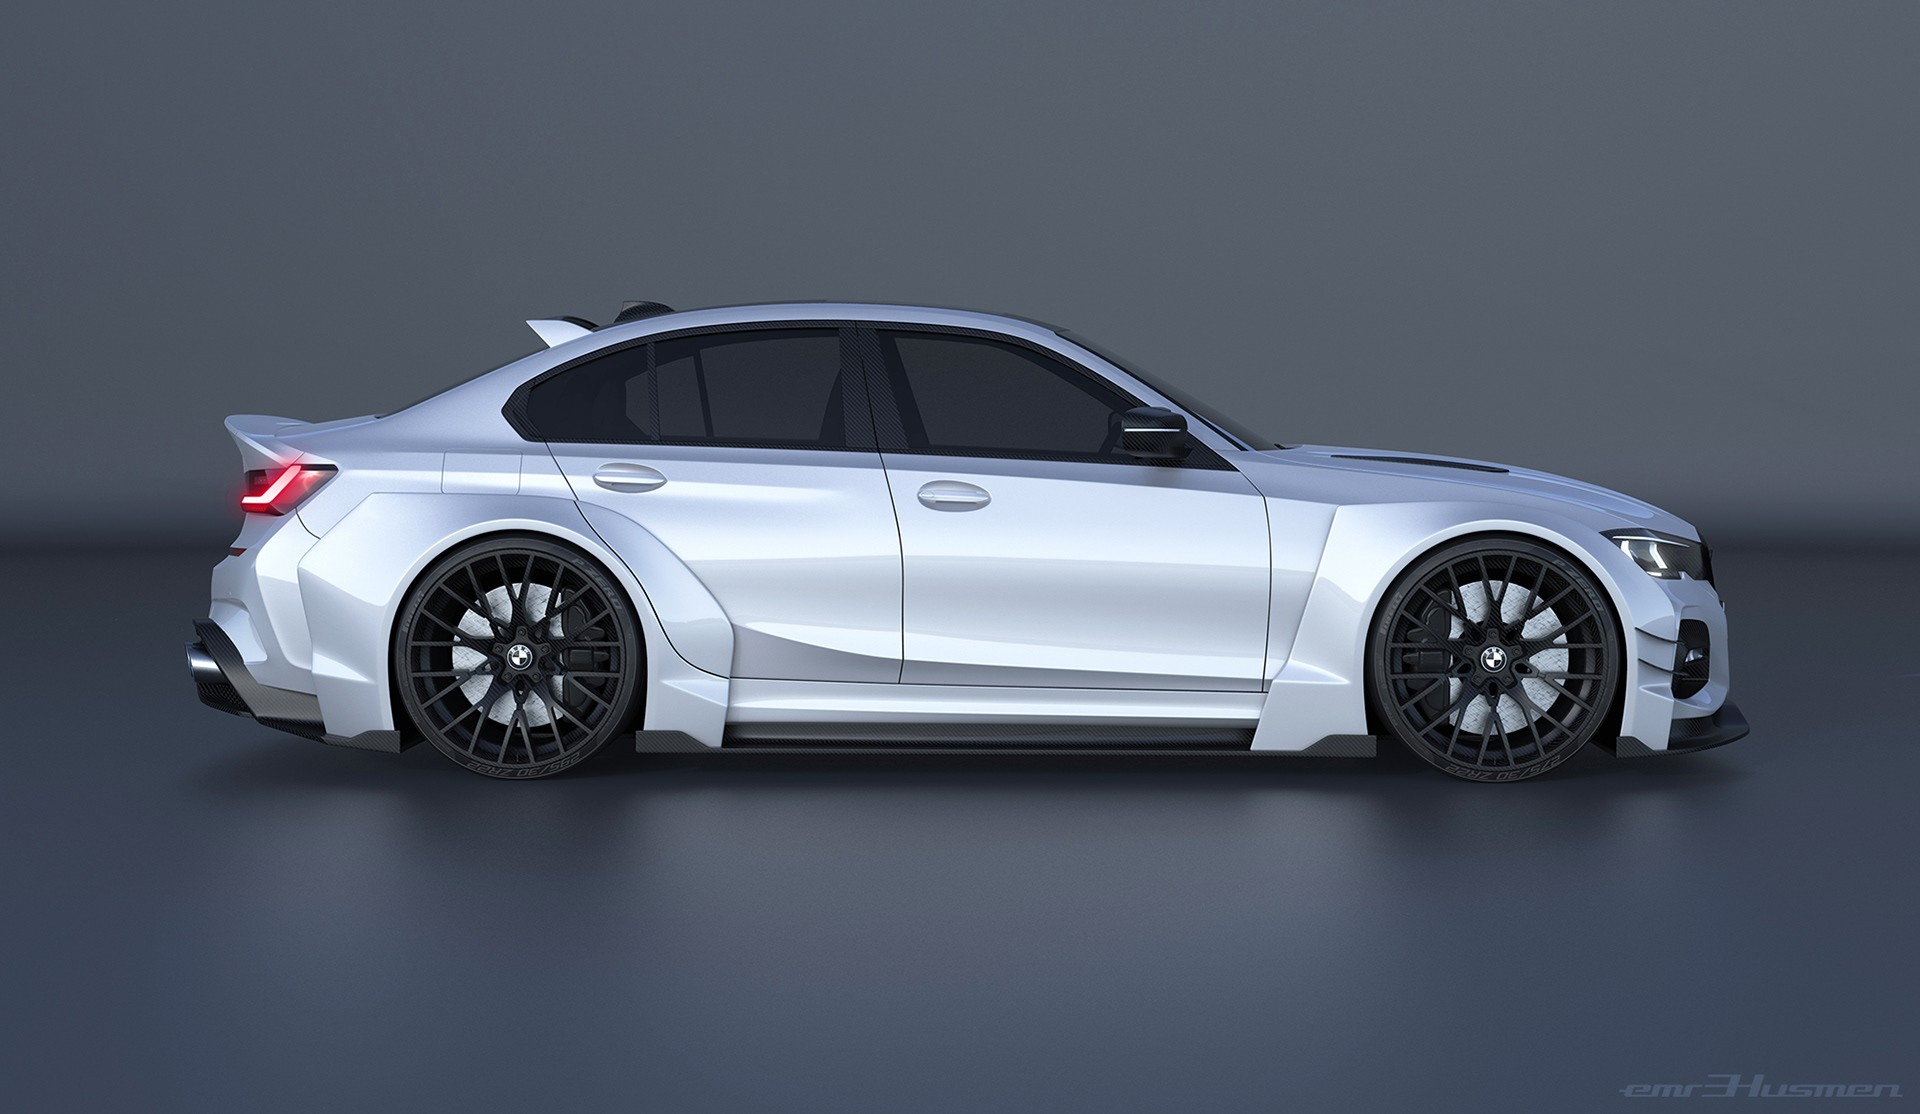 2020 Bmw 3 Series Rendered With Race Car Concept Kit